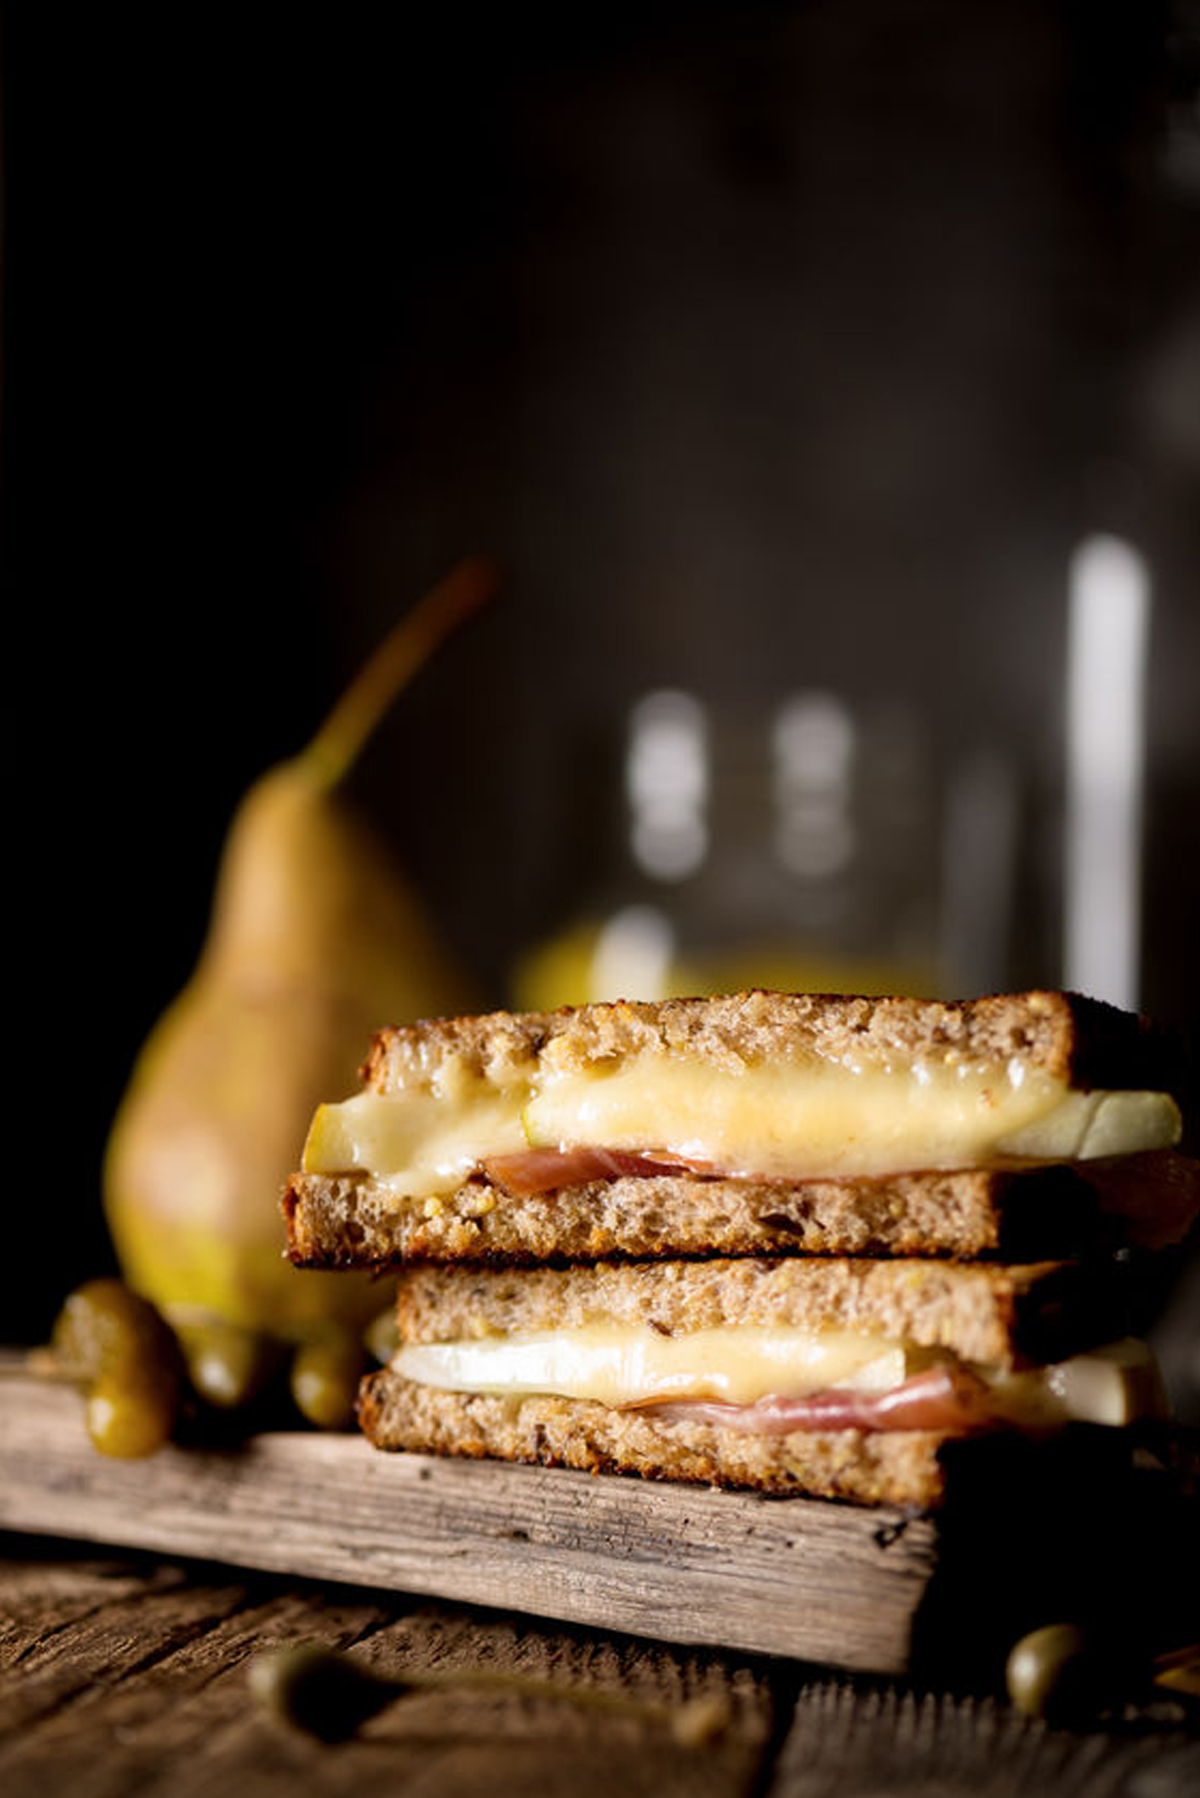 Grilled Cheese Sandwich with Prosciutto, Mild Cheddar and Pear.